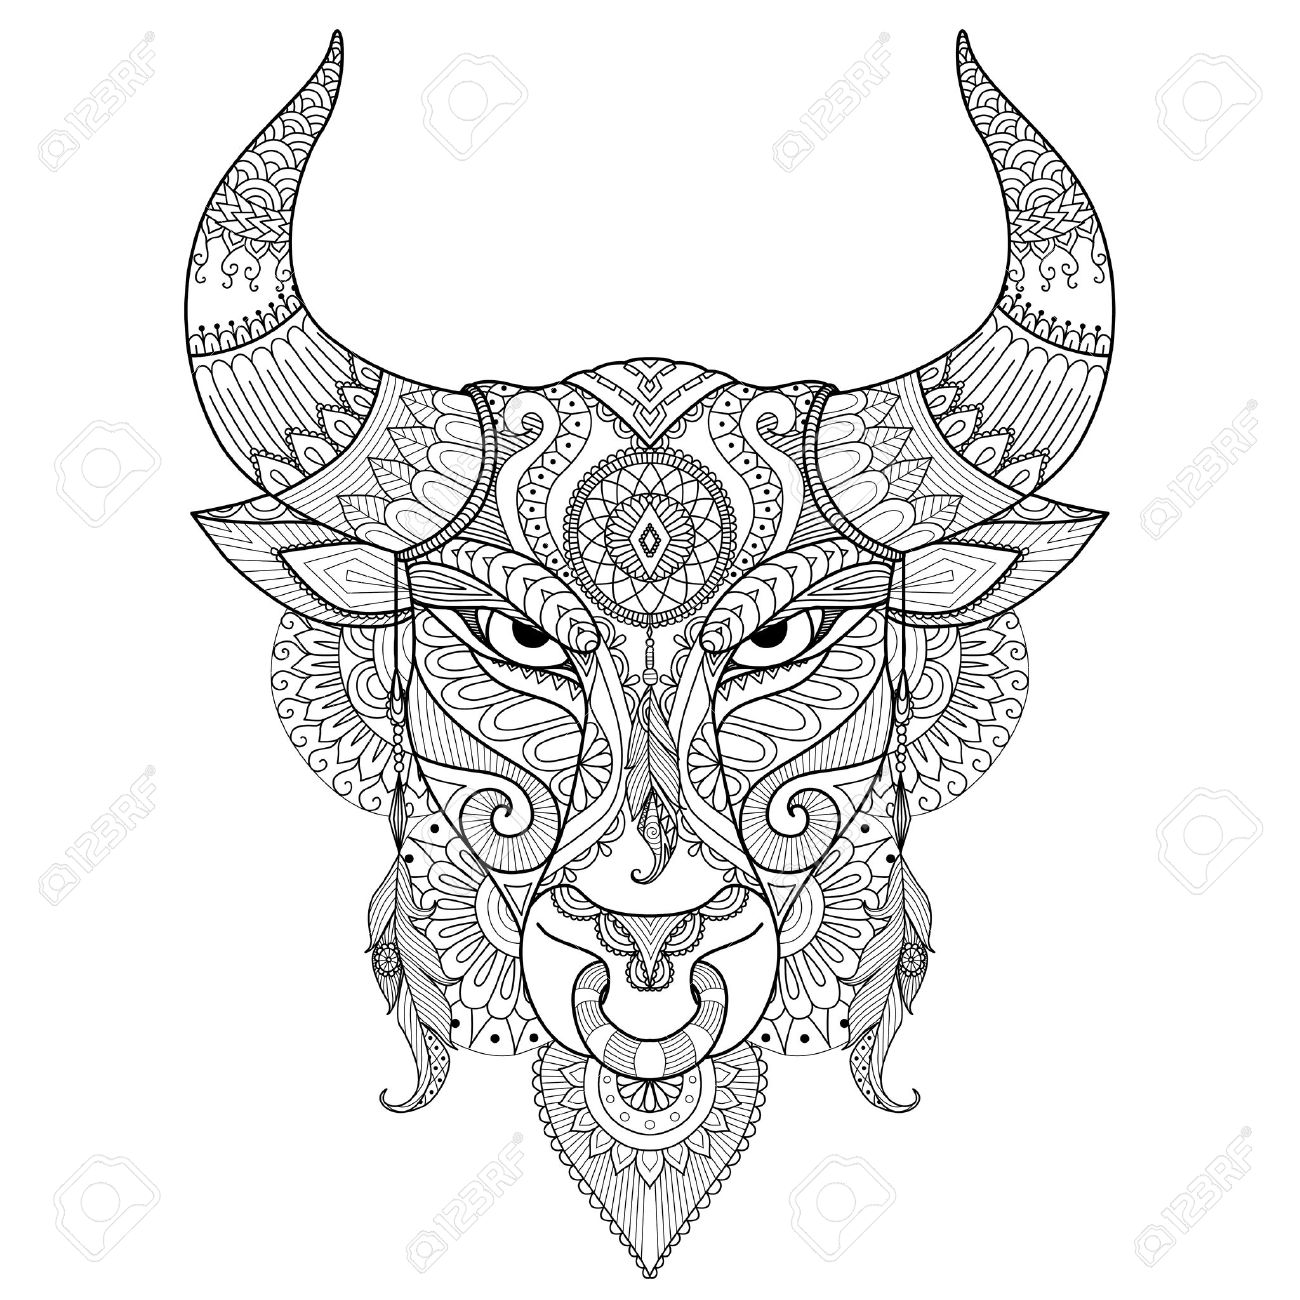 1300x1300 Drawing Angry Bull For Coloring Book,tattoo,t Shirt Design